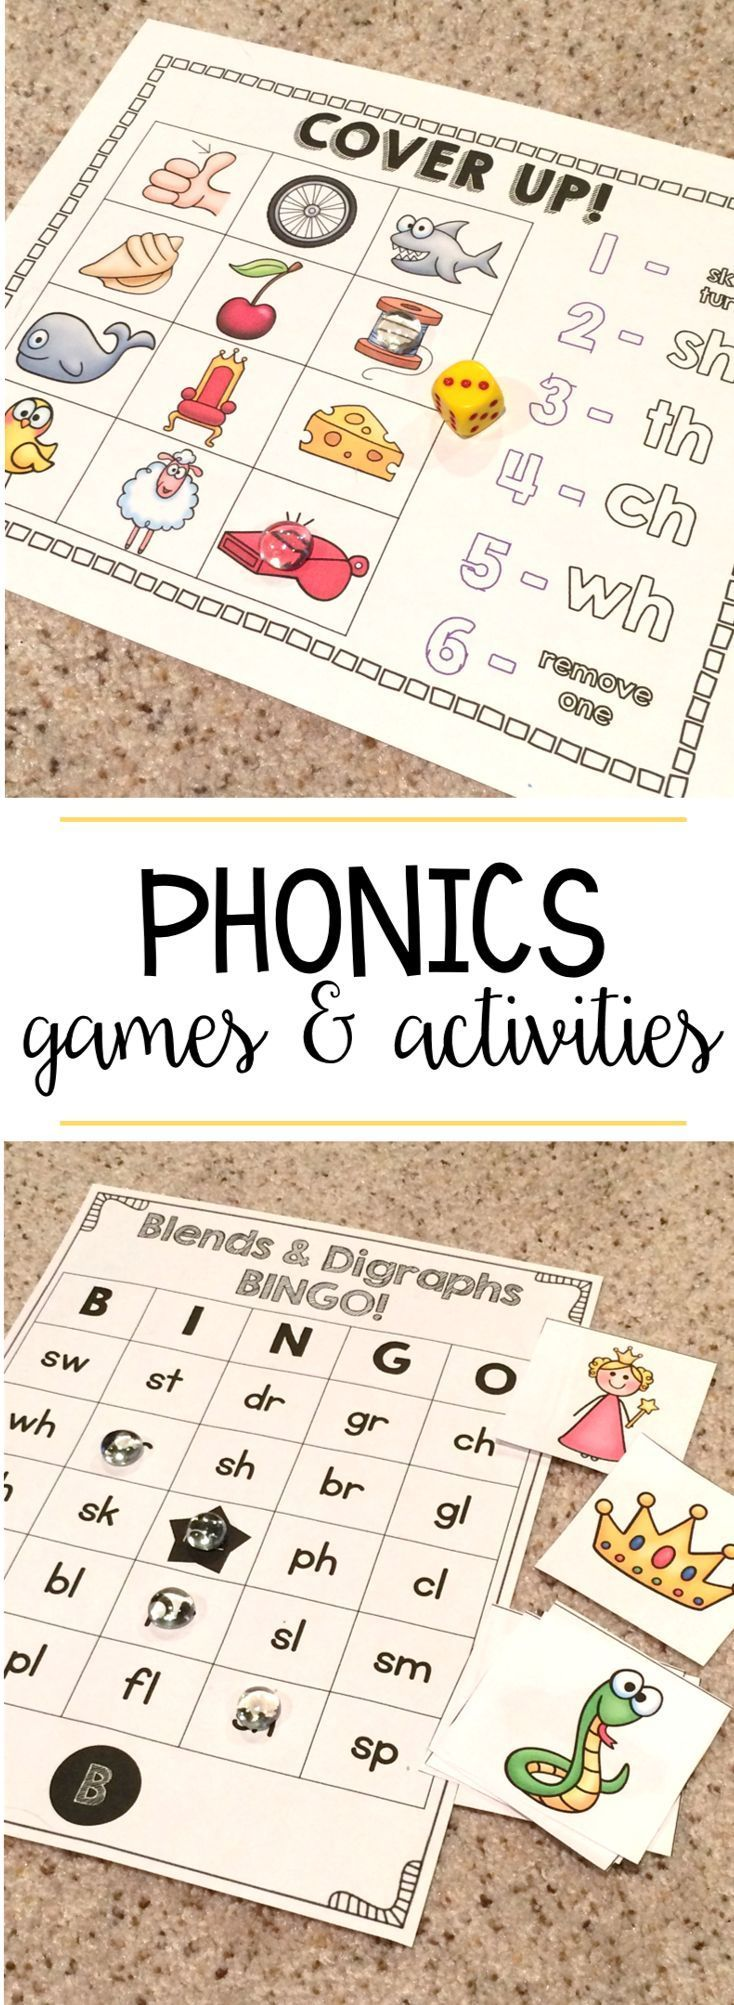 Game maker color blend - Phonics Games Digraphs Blends Short Long Vowels